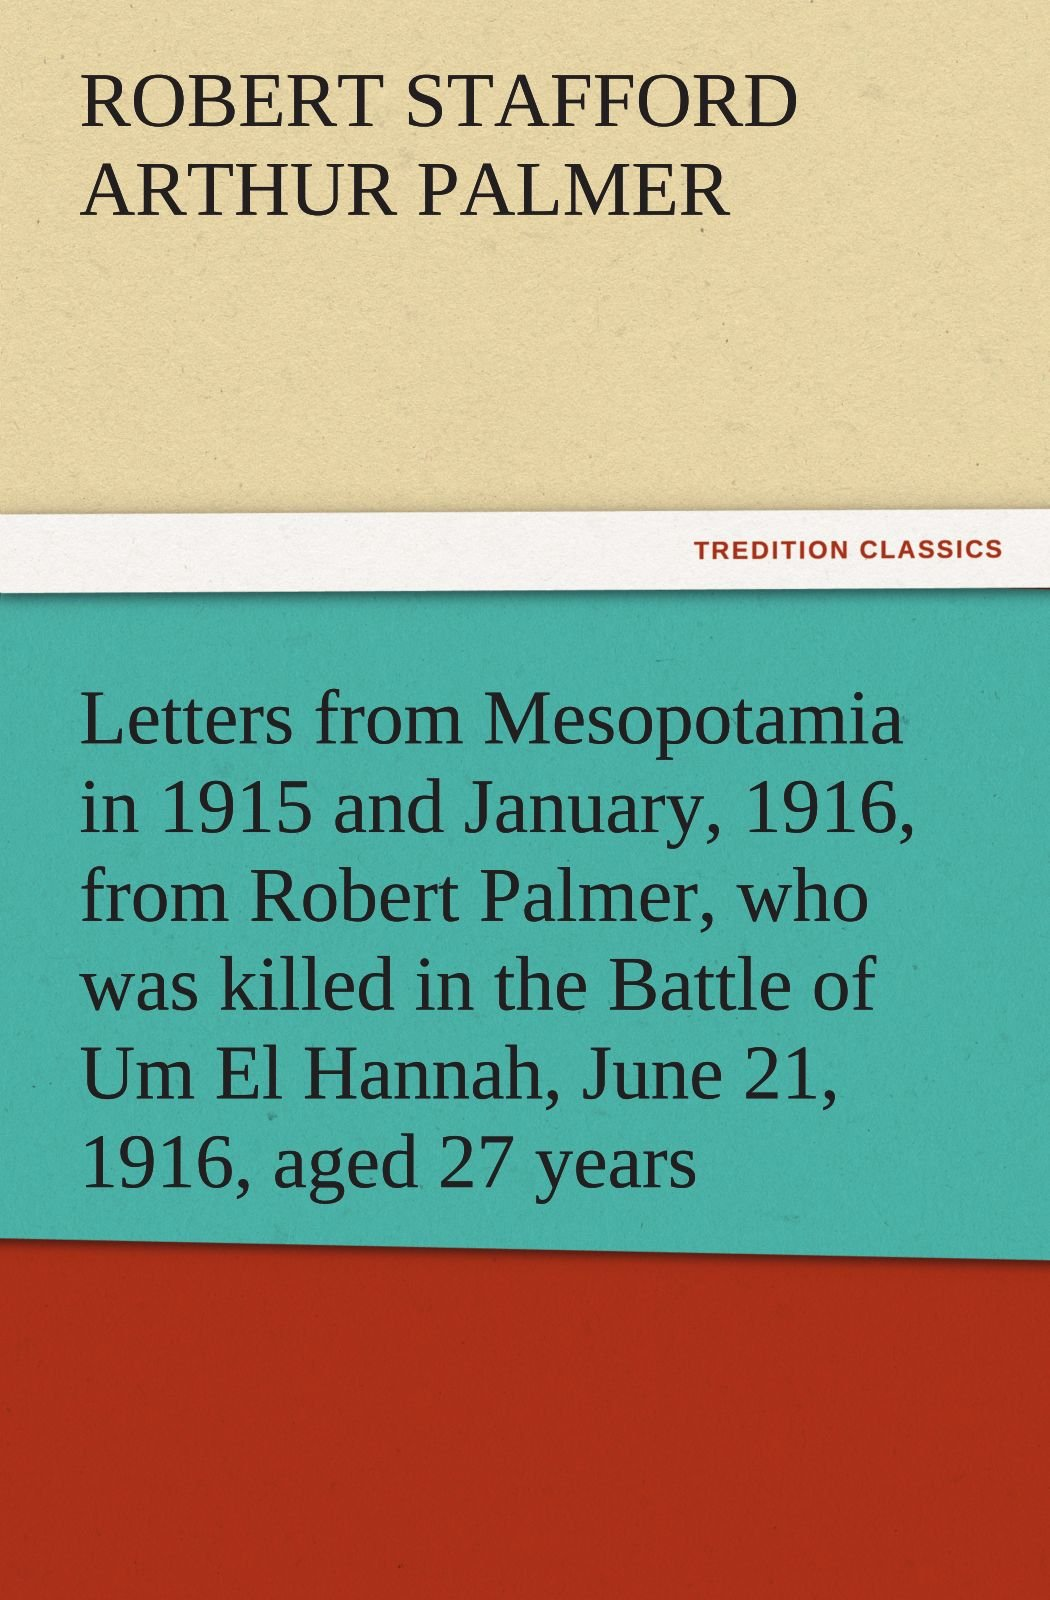 Letters from Mesopotamia in 1915 and January, 1916, from Robert Palmer, who was killed in the Battle of Um El Hannah, June 21, 1916, aged 27 years (TREDITION CLASSICS)